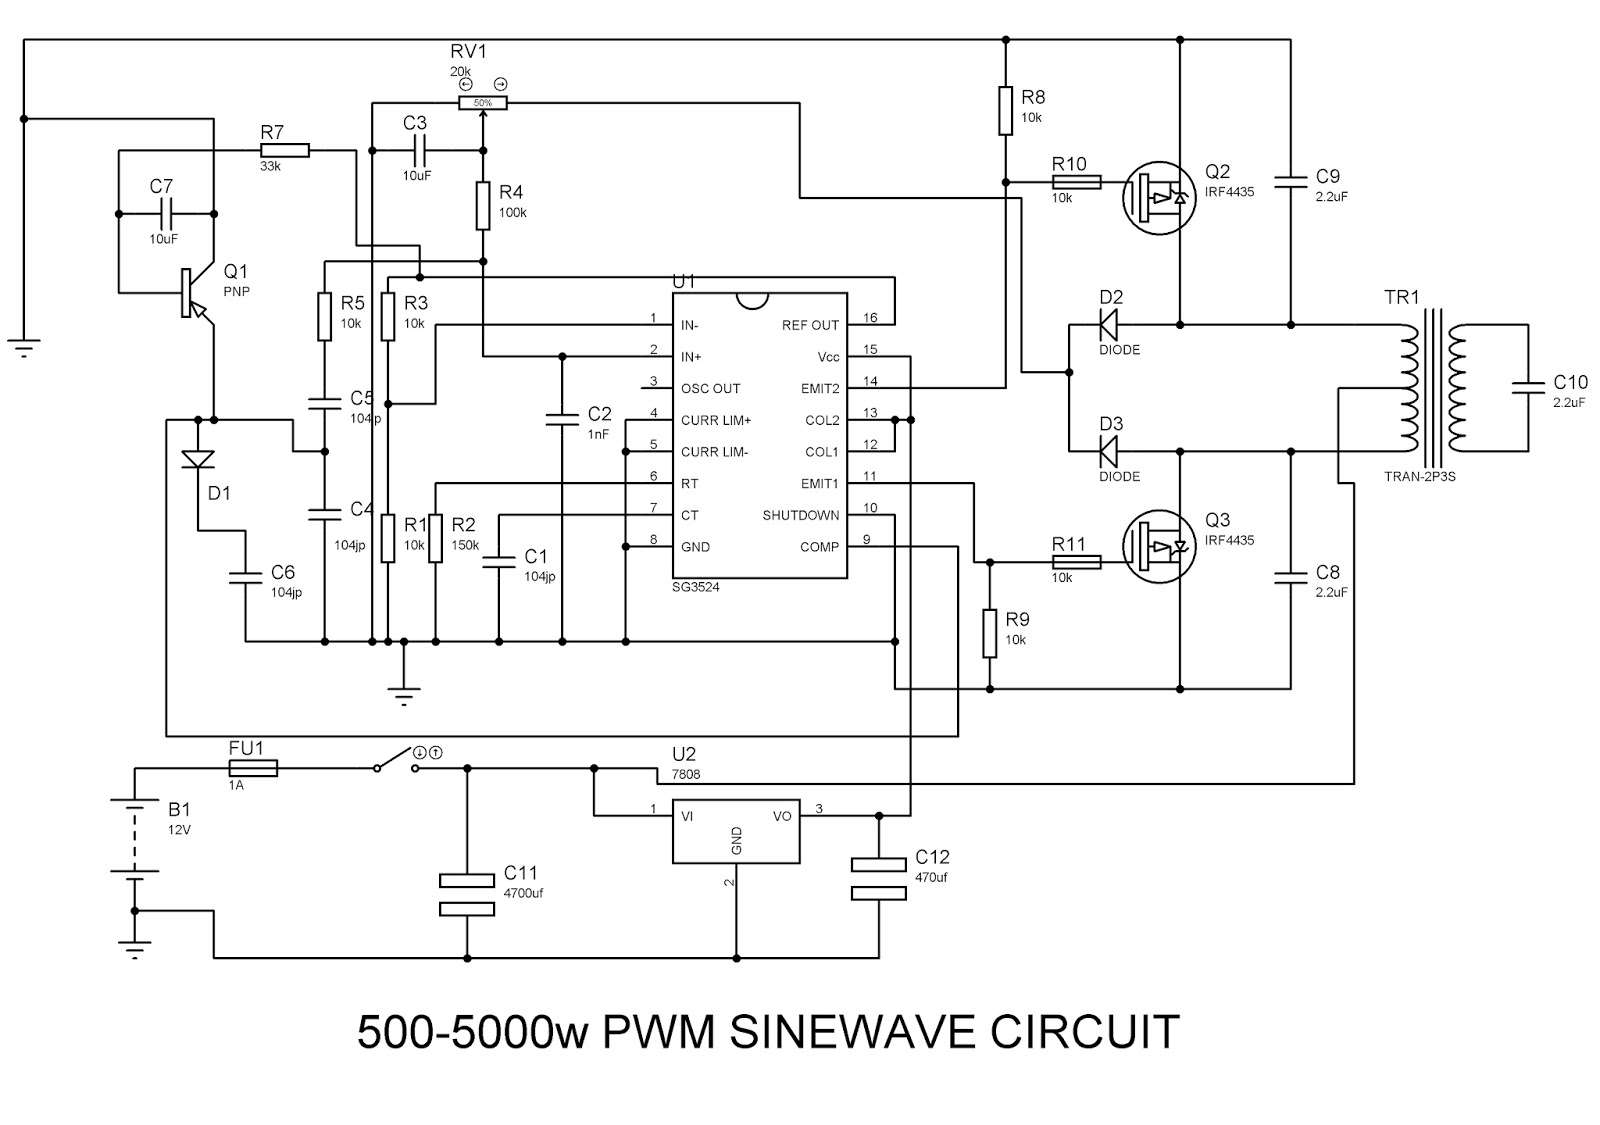 medium resolution of circuit diagram of 500w pwm inverter about the circuit